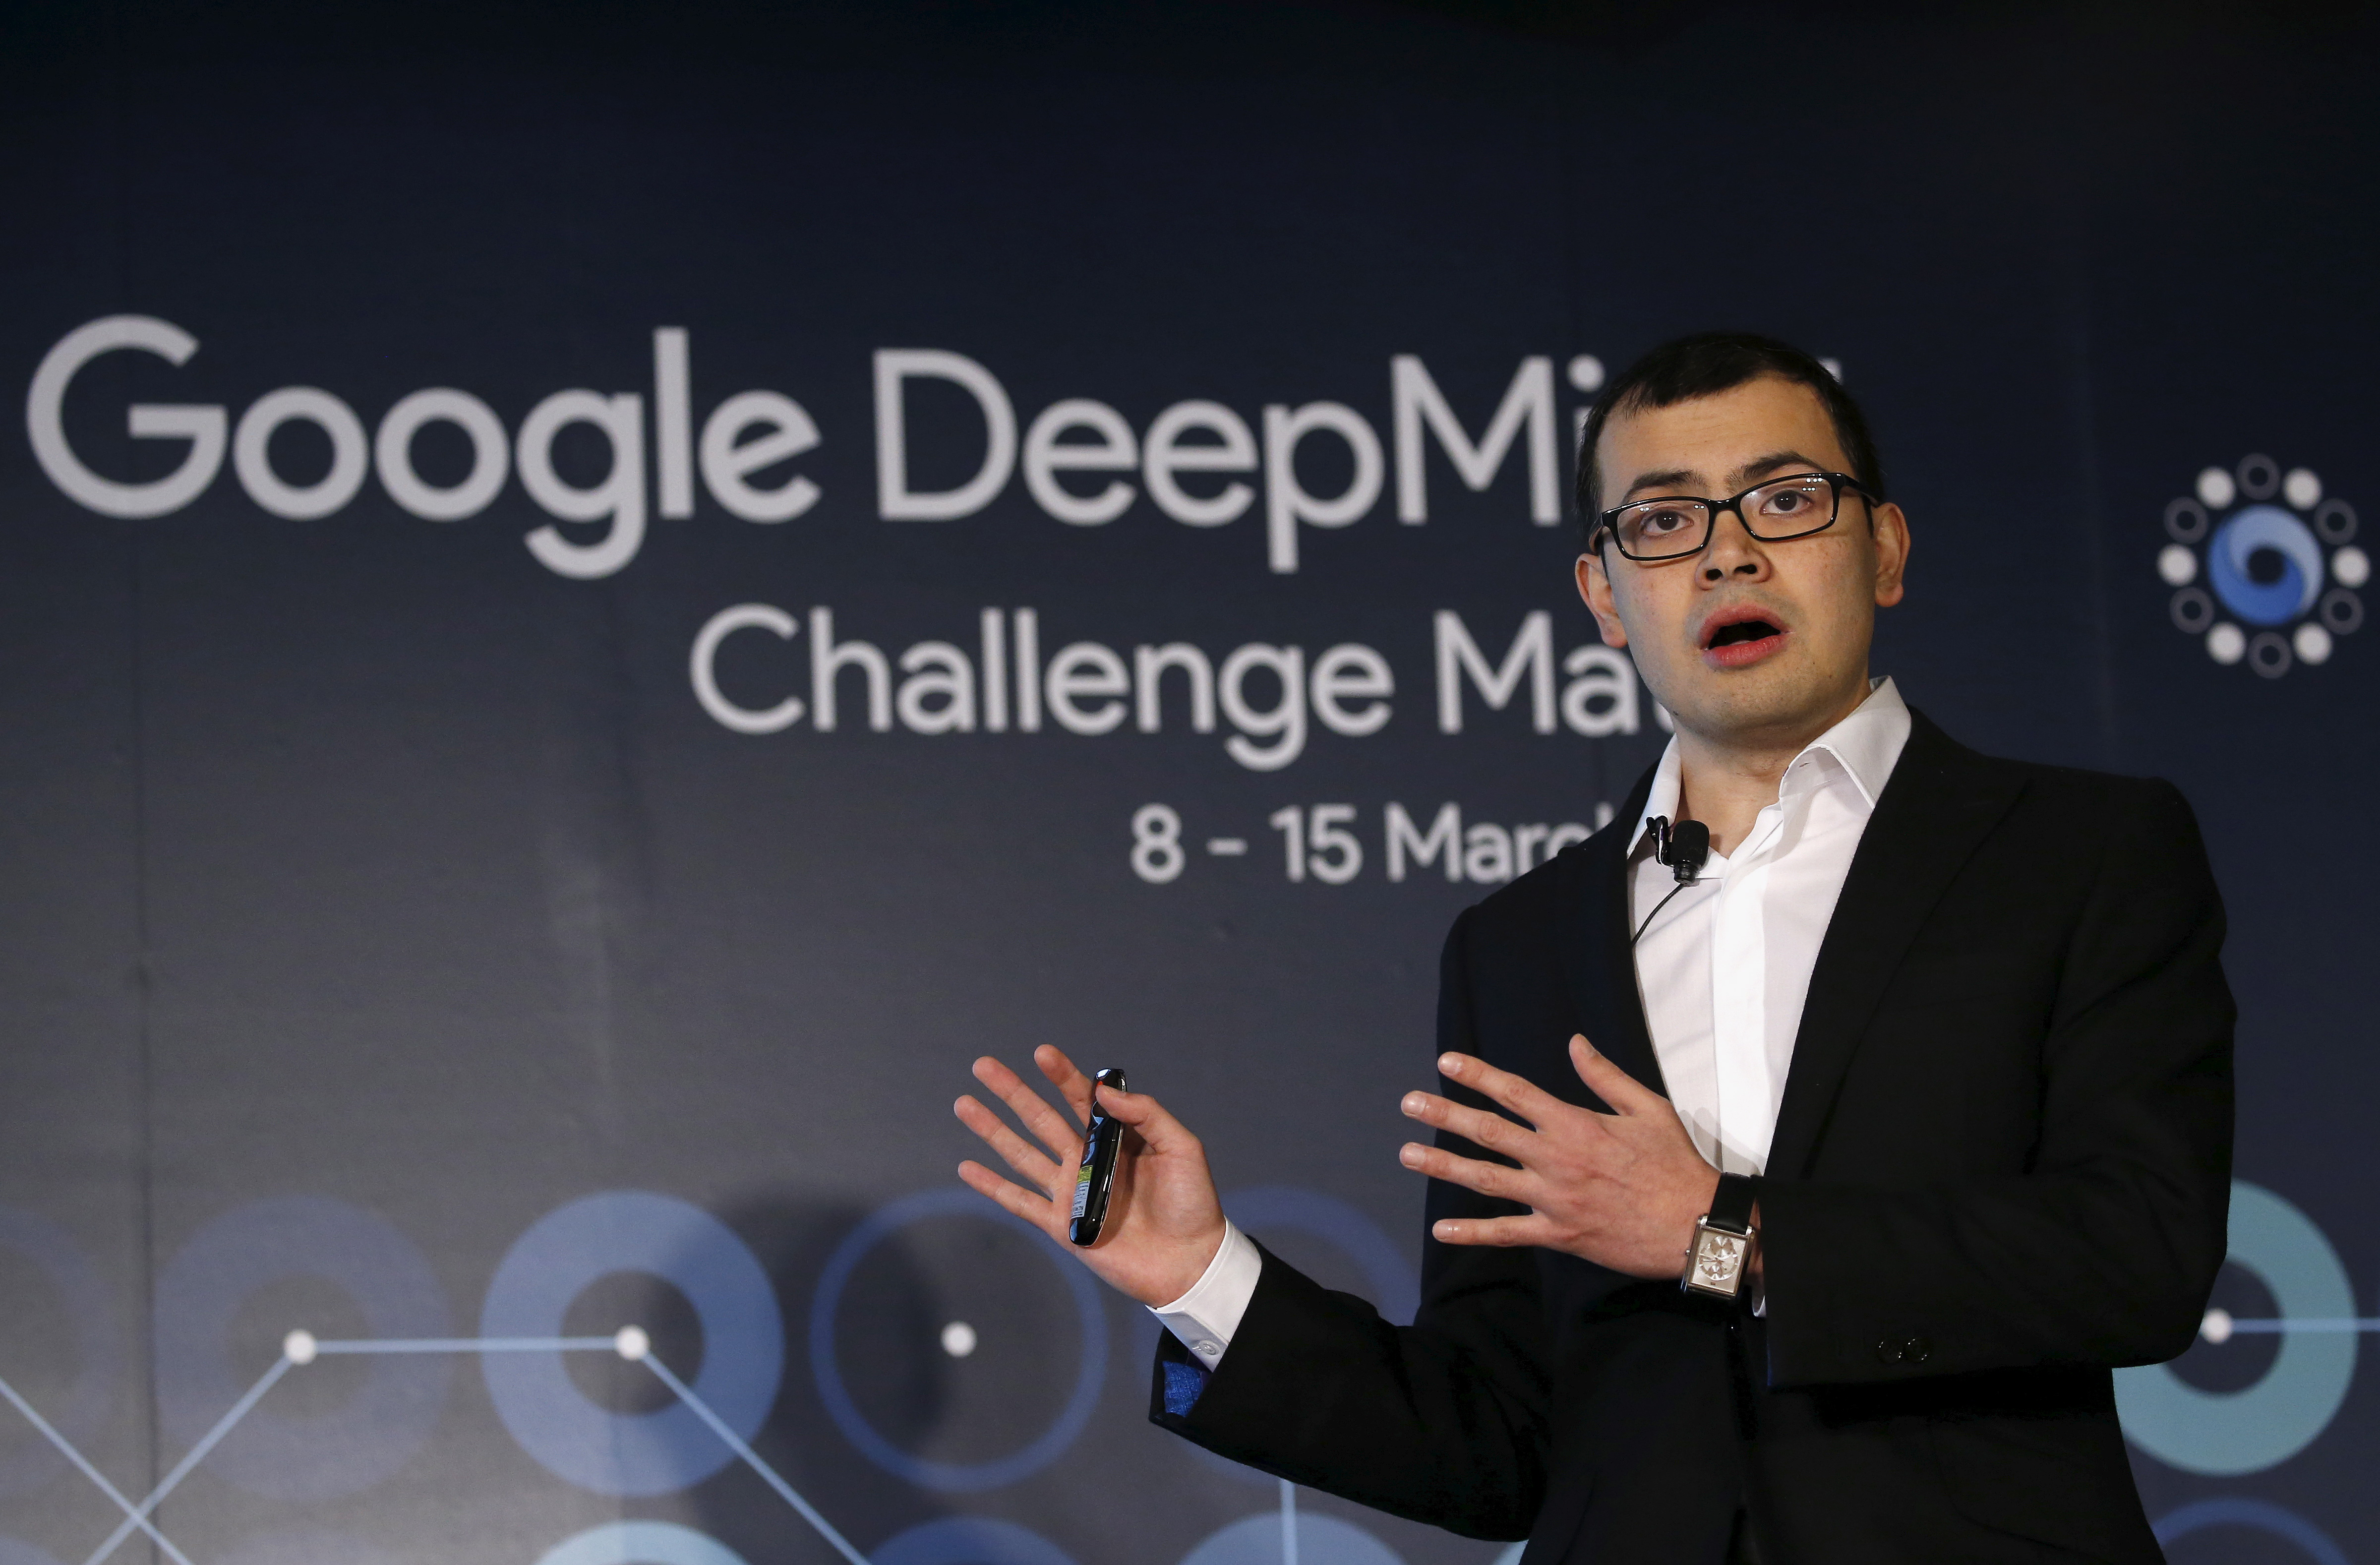 Google DeepMind made headlines earlier this year by defeating a world champion Go player. Demis Hassabis, the CEO of DeepMind Technologies and developer of AlphaGO, speaks during a news conference ahead of matches against Google's artificial intelligence program AlphaGo, in Seoul, South Korea, March 8, 2016.